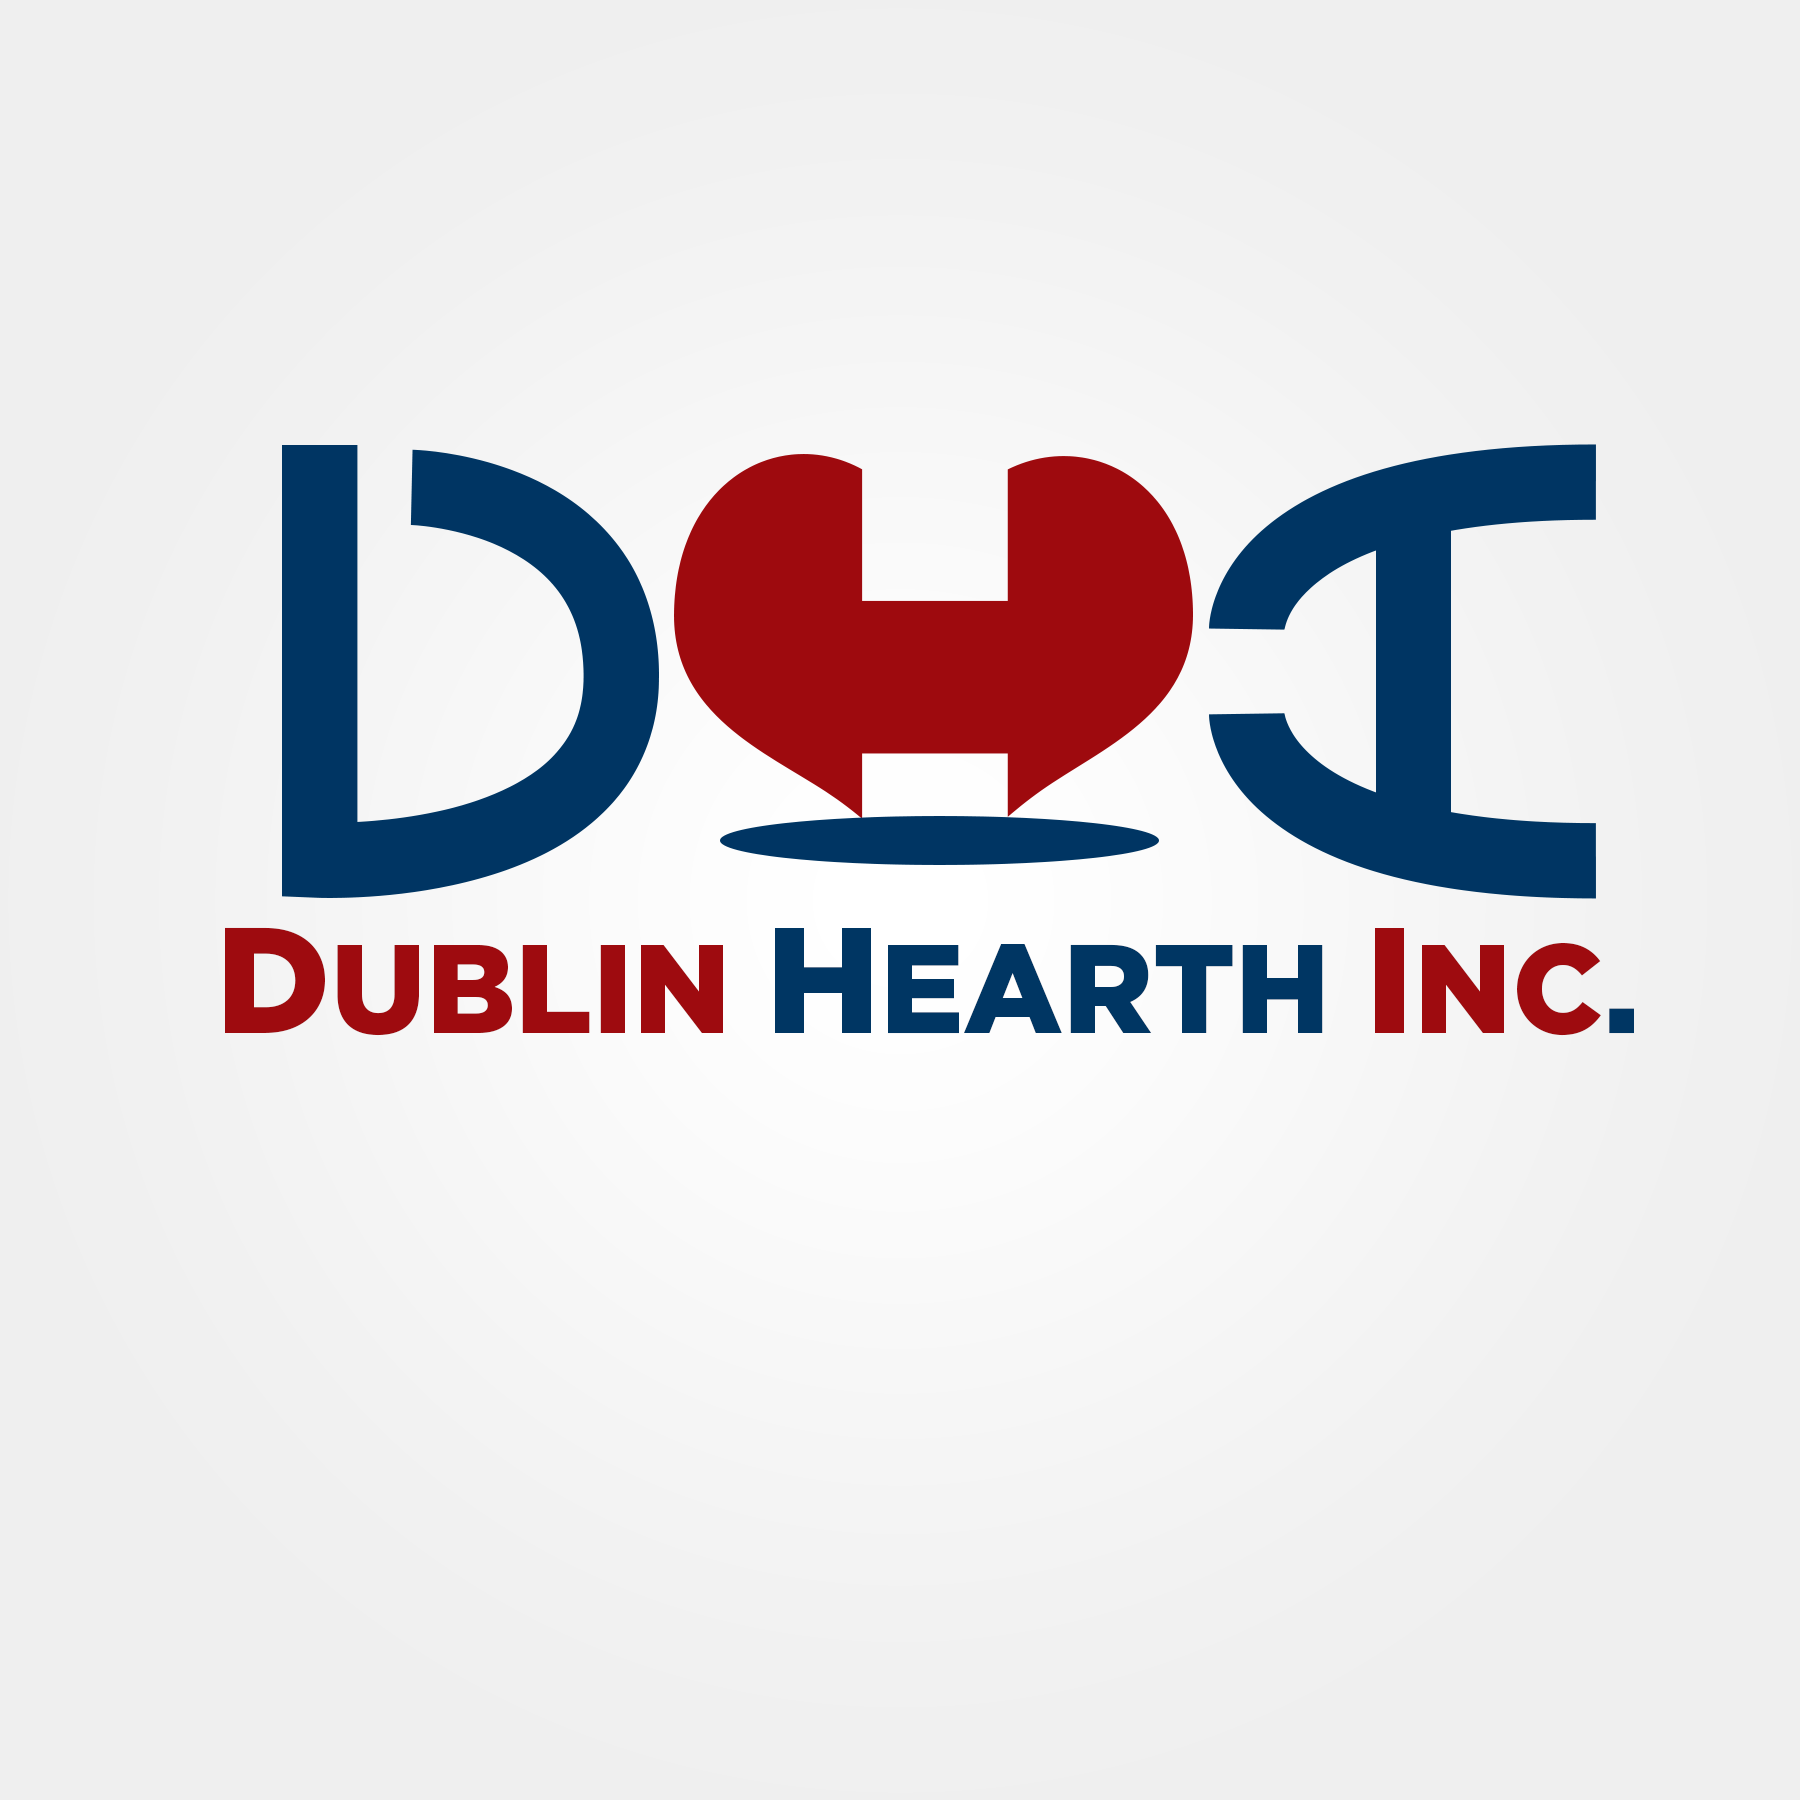 Logo Design by Lemuel Arvin Tanzo - Entry No. 29 in the Logo Design Contest clean professional  Logo Design for Dublin Hearth Inc. with a splash of fun with letter head.